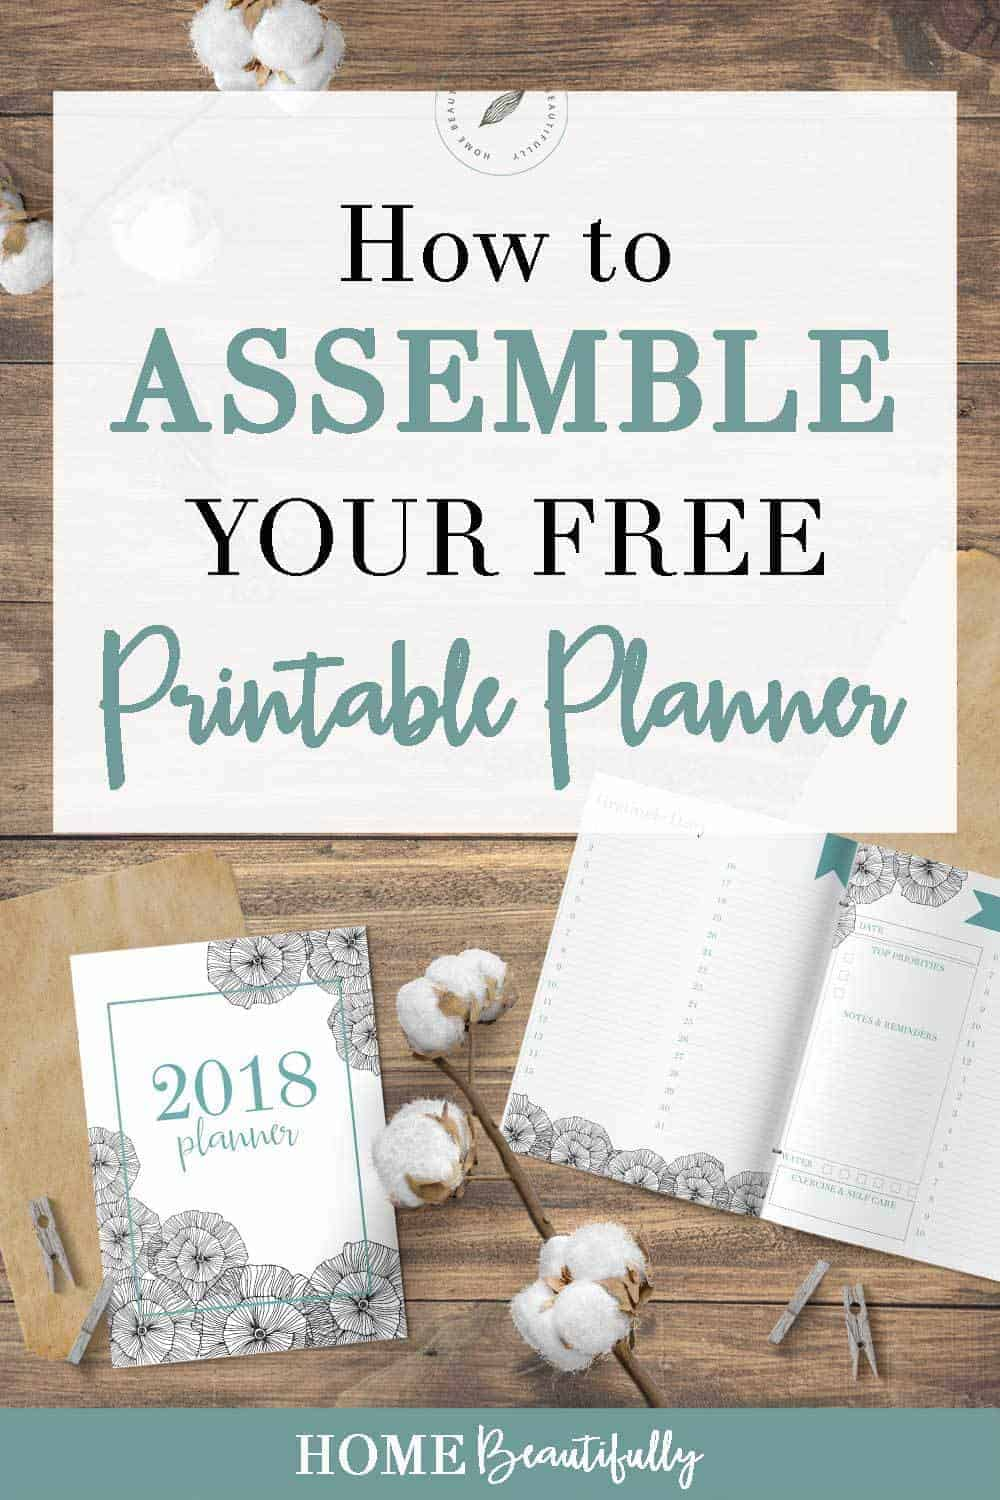 free printable 2018 custom planner on a wood rustic background with cotton stems and kraft paper